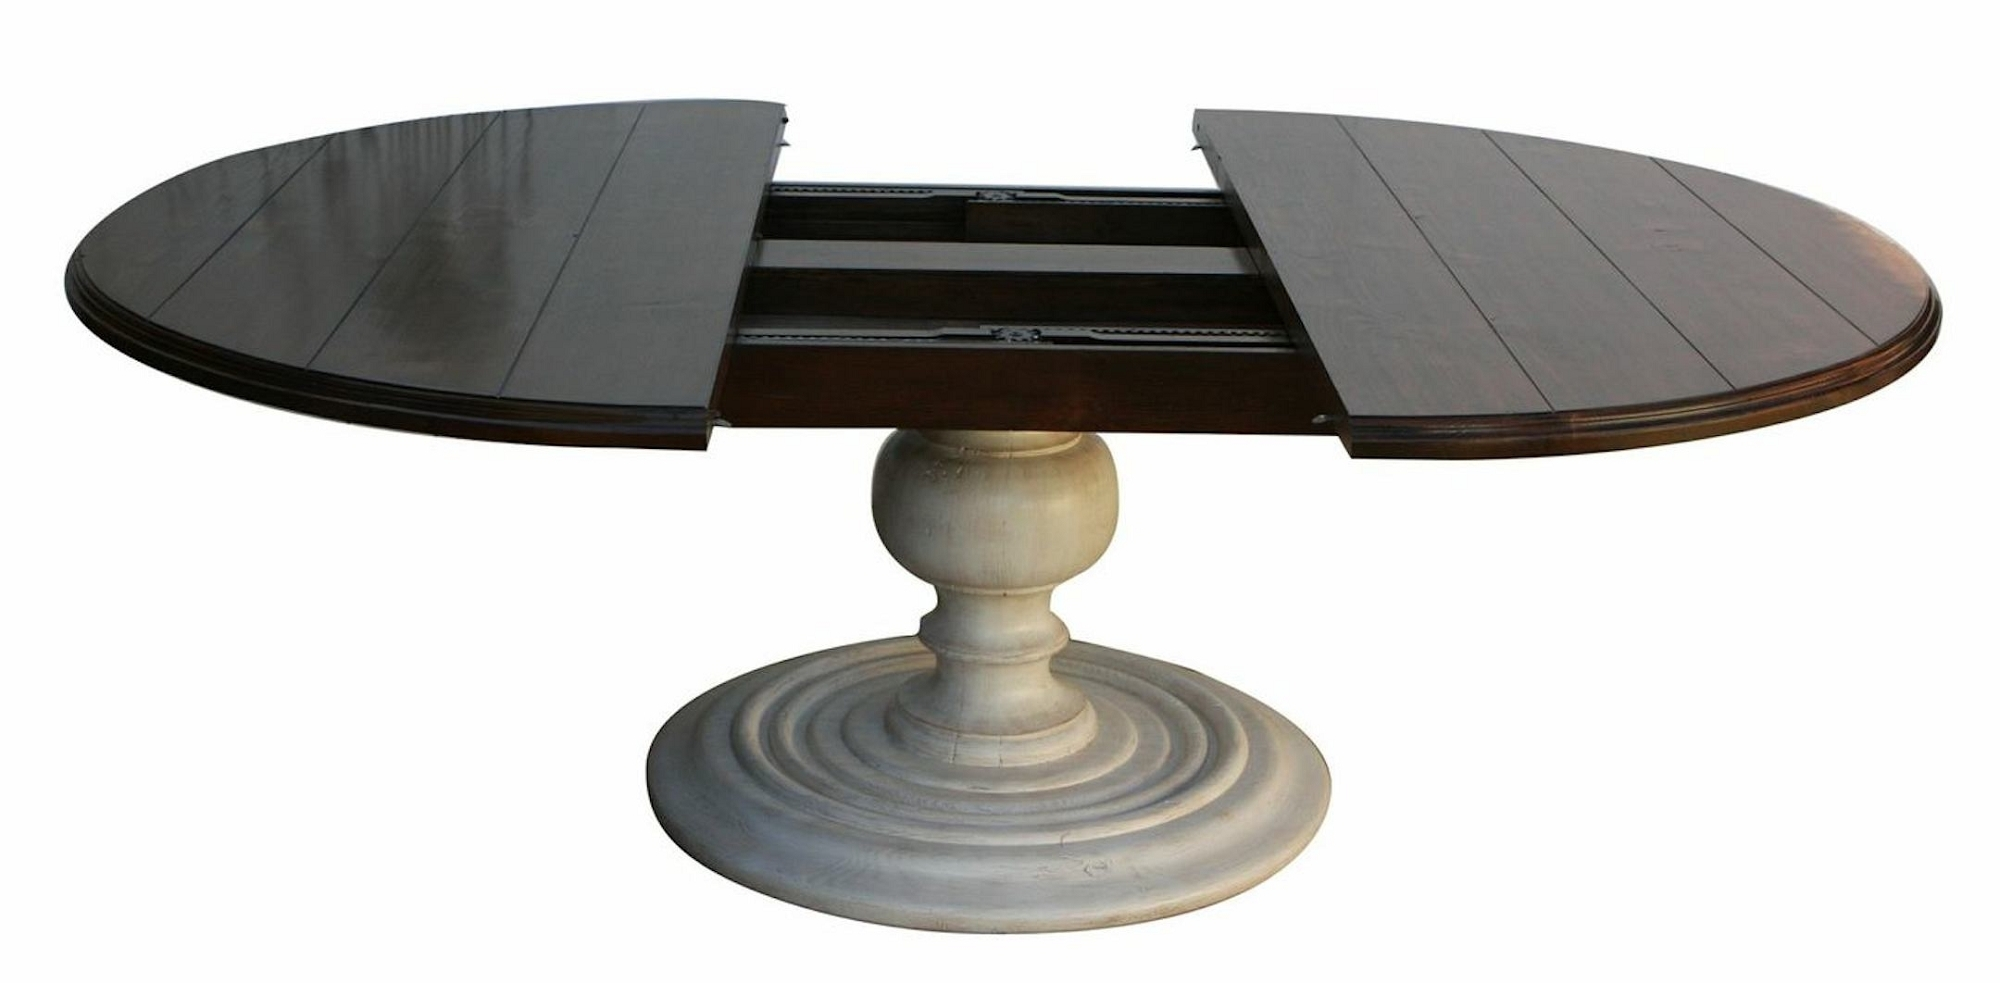 Entertain Them With Your Country Dining Table! – Home Decor Ideas Within Best And Newest Jaxon Round Extension Dining Tables (View 14 of 20)